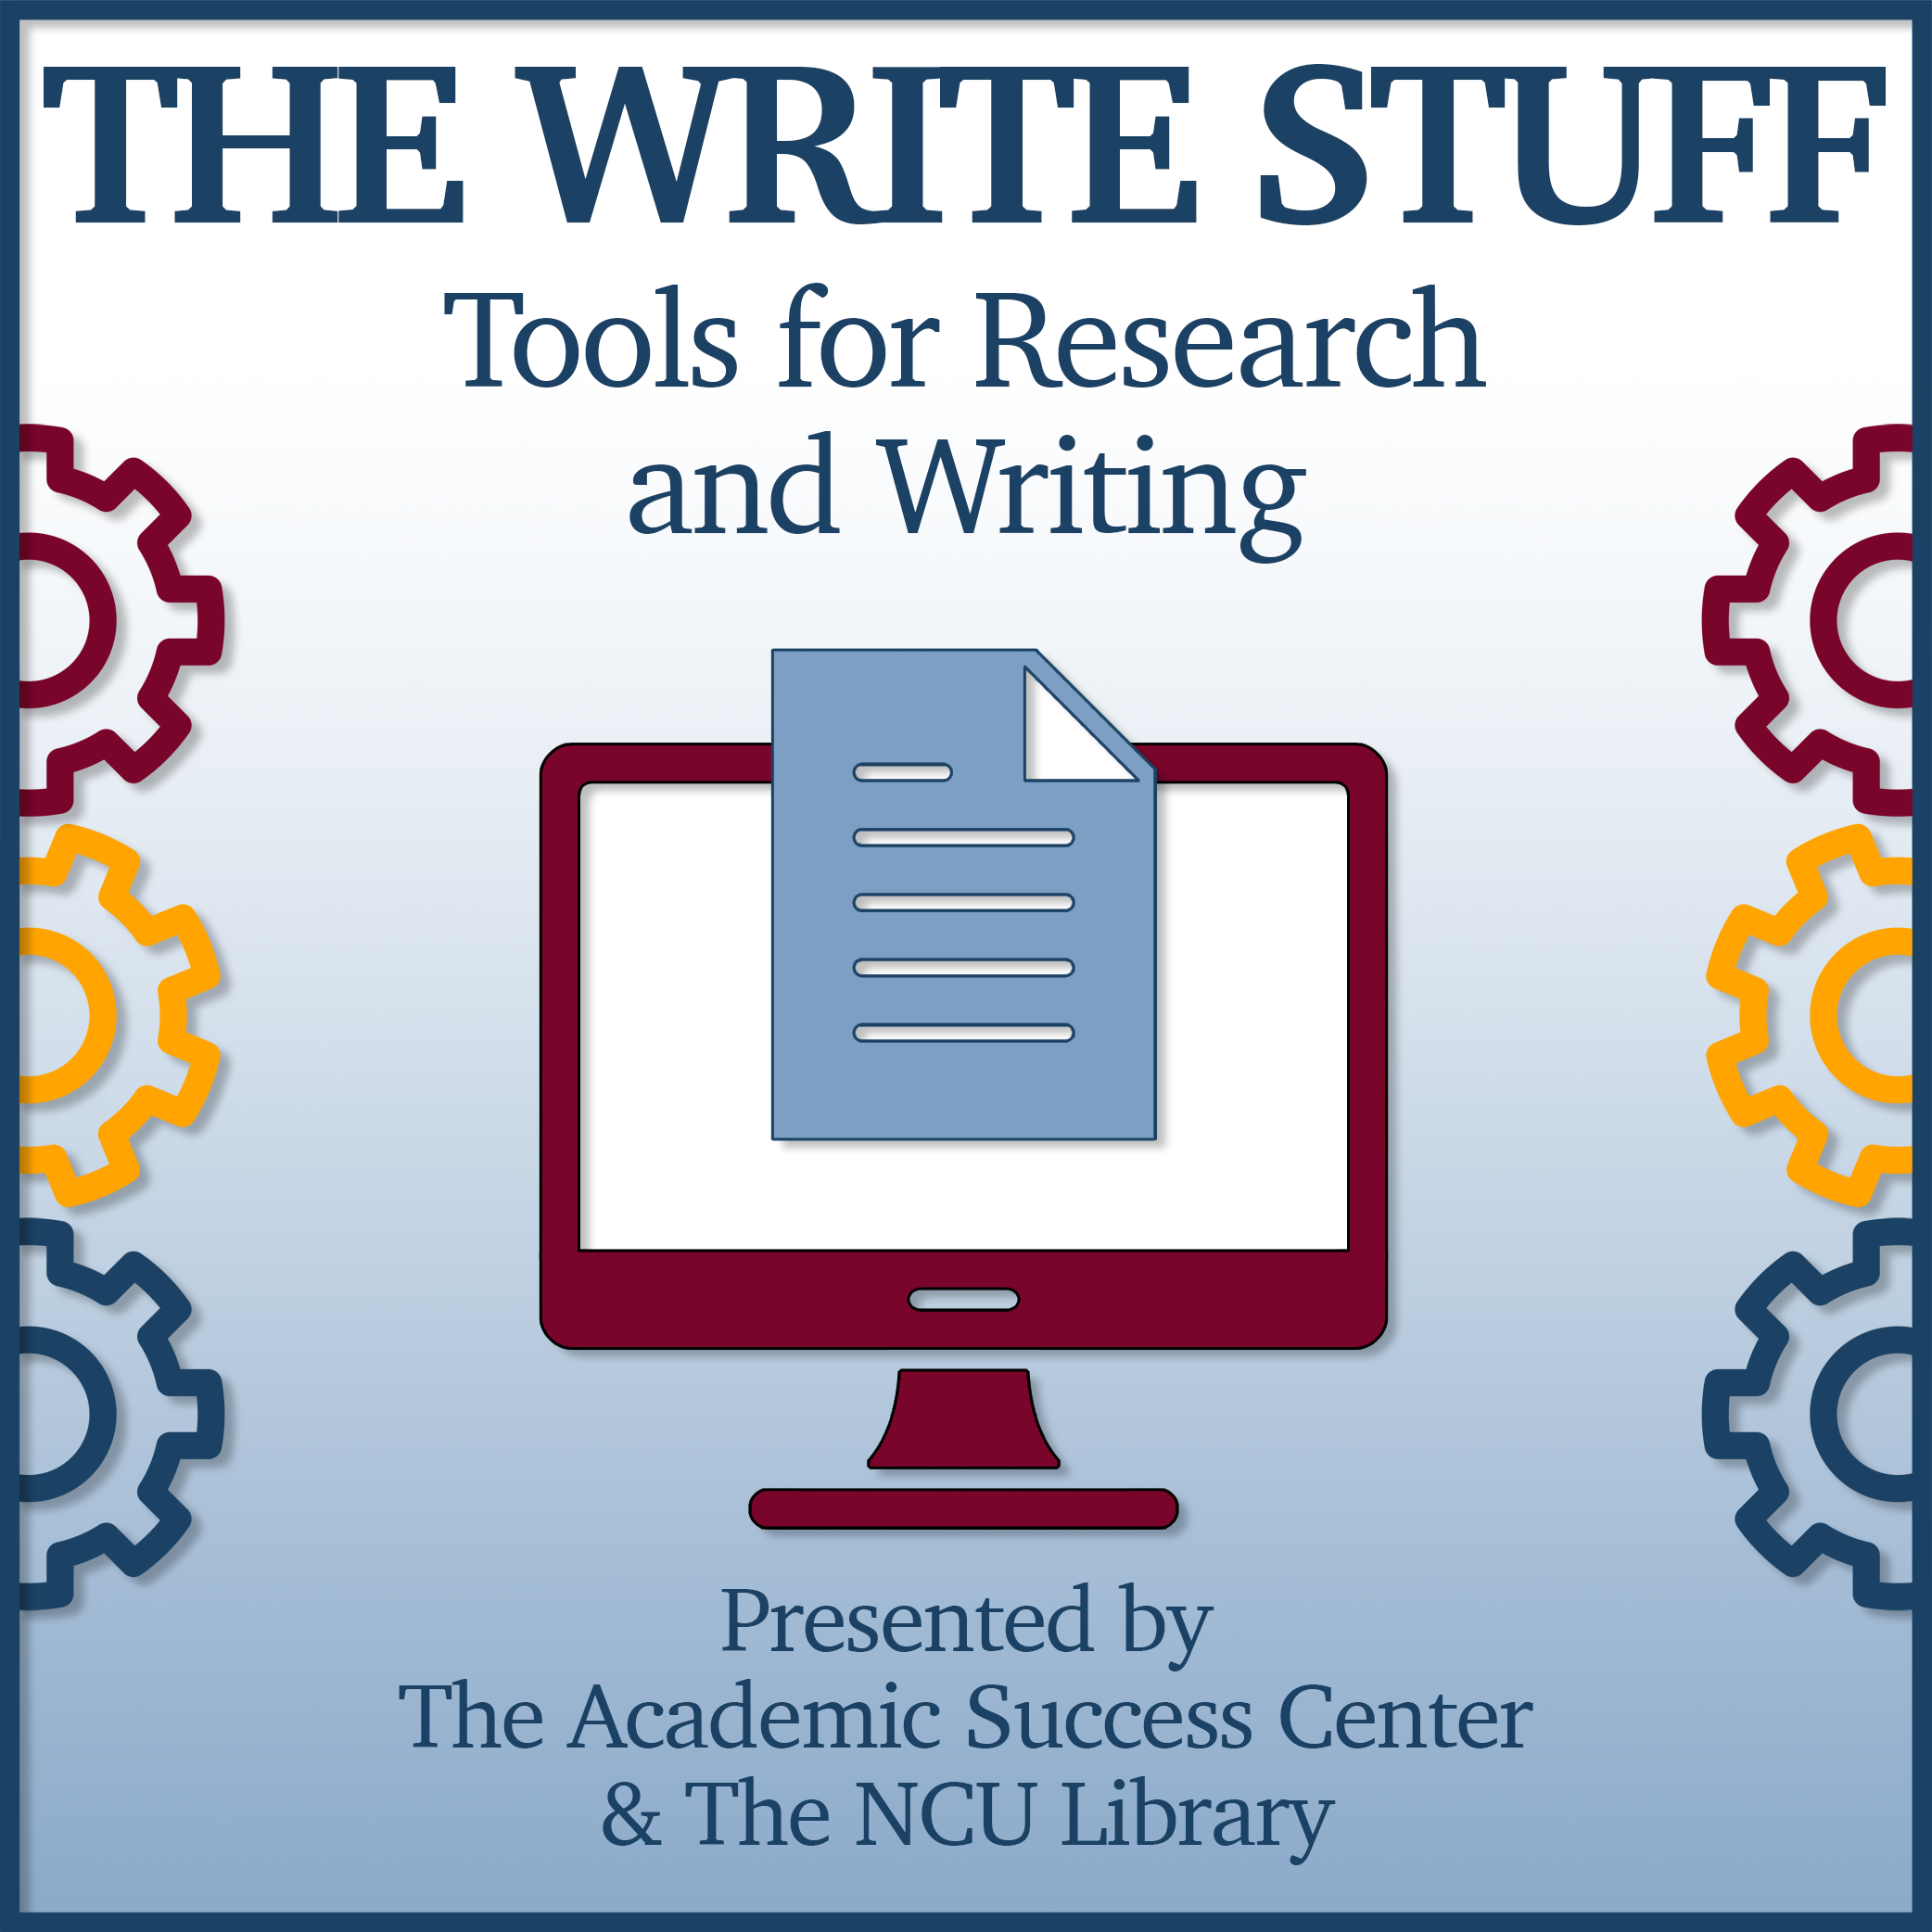 The Write Stuff: Tools for Research and Writing presented by the Academic Success Center and the NCU Library